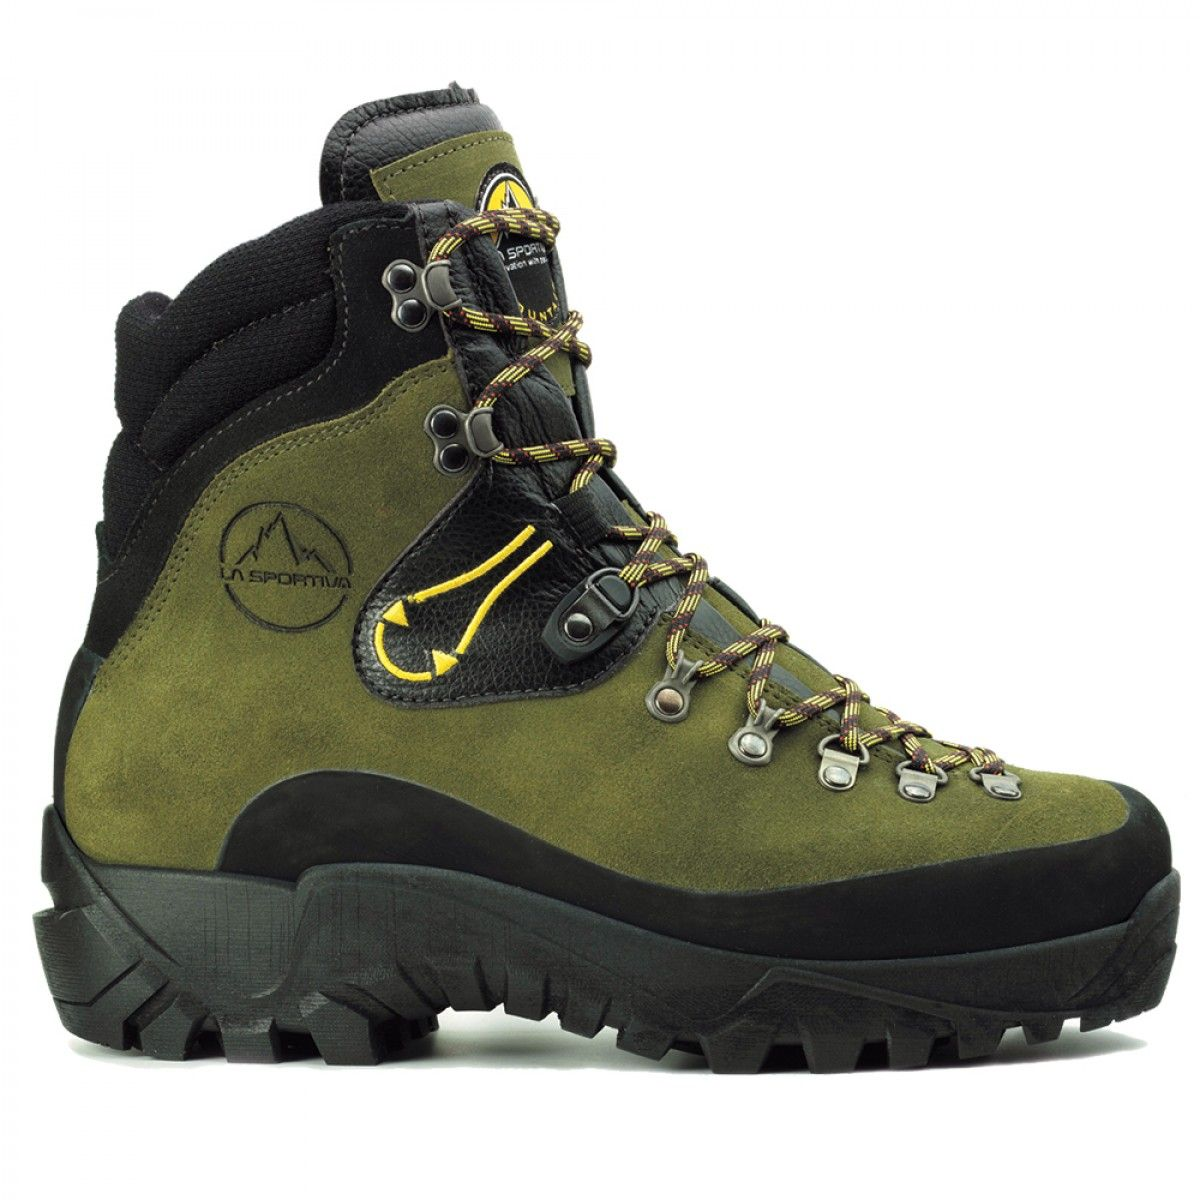 10 Best ayakkabi images | Hiking boots, Mountaineering boots